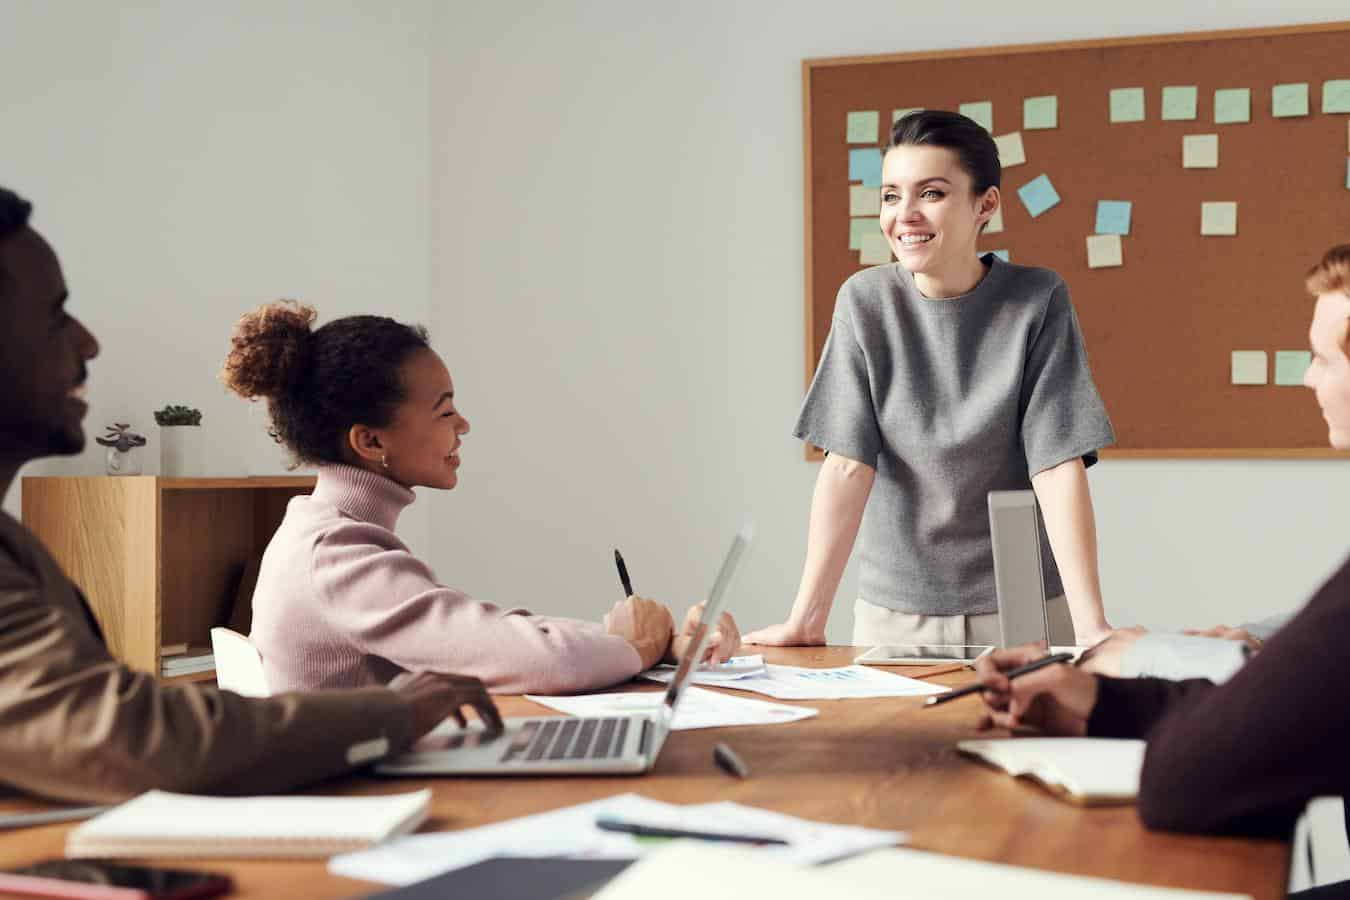 Why is employee motivation important